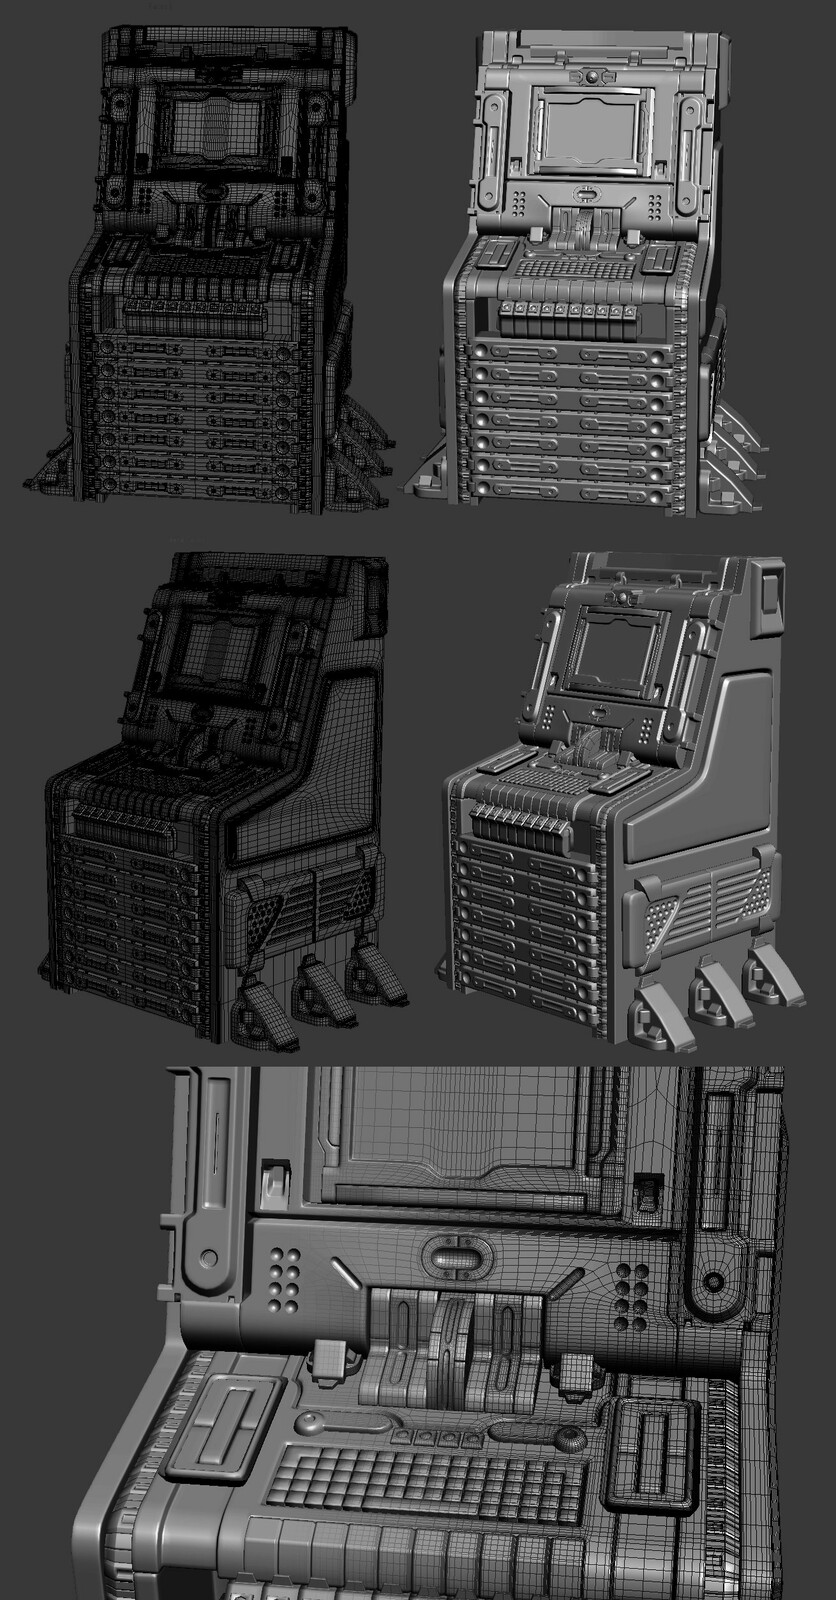 Space computer high poly.